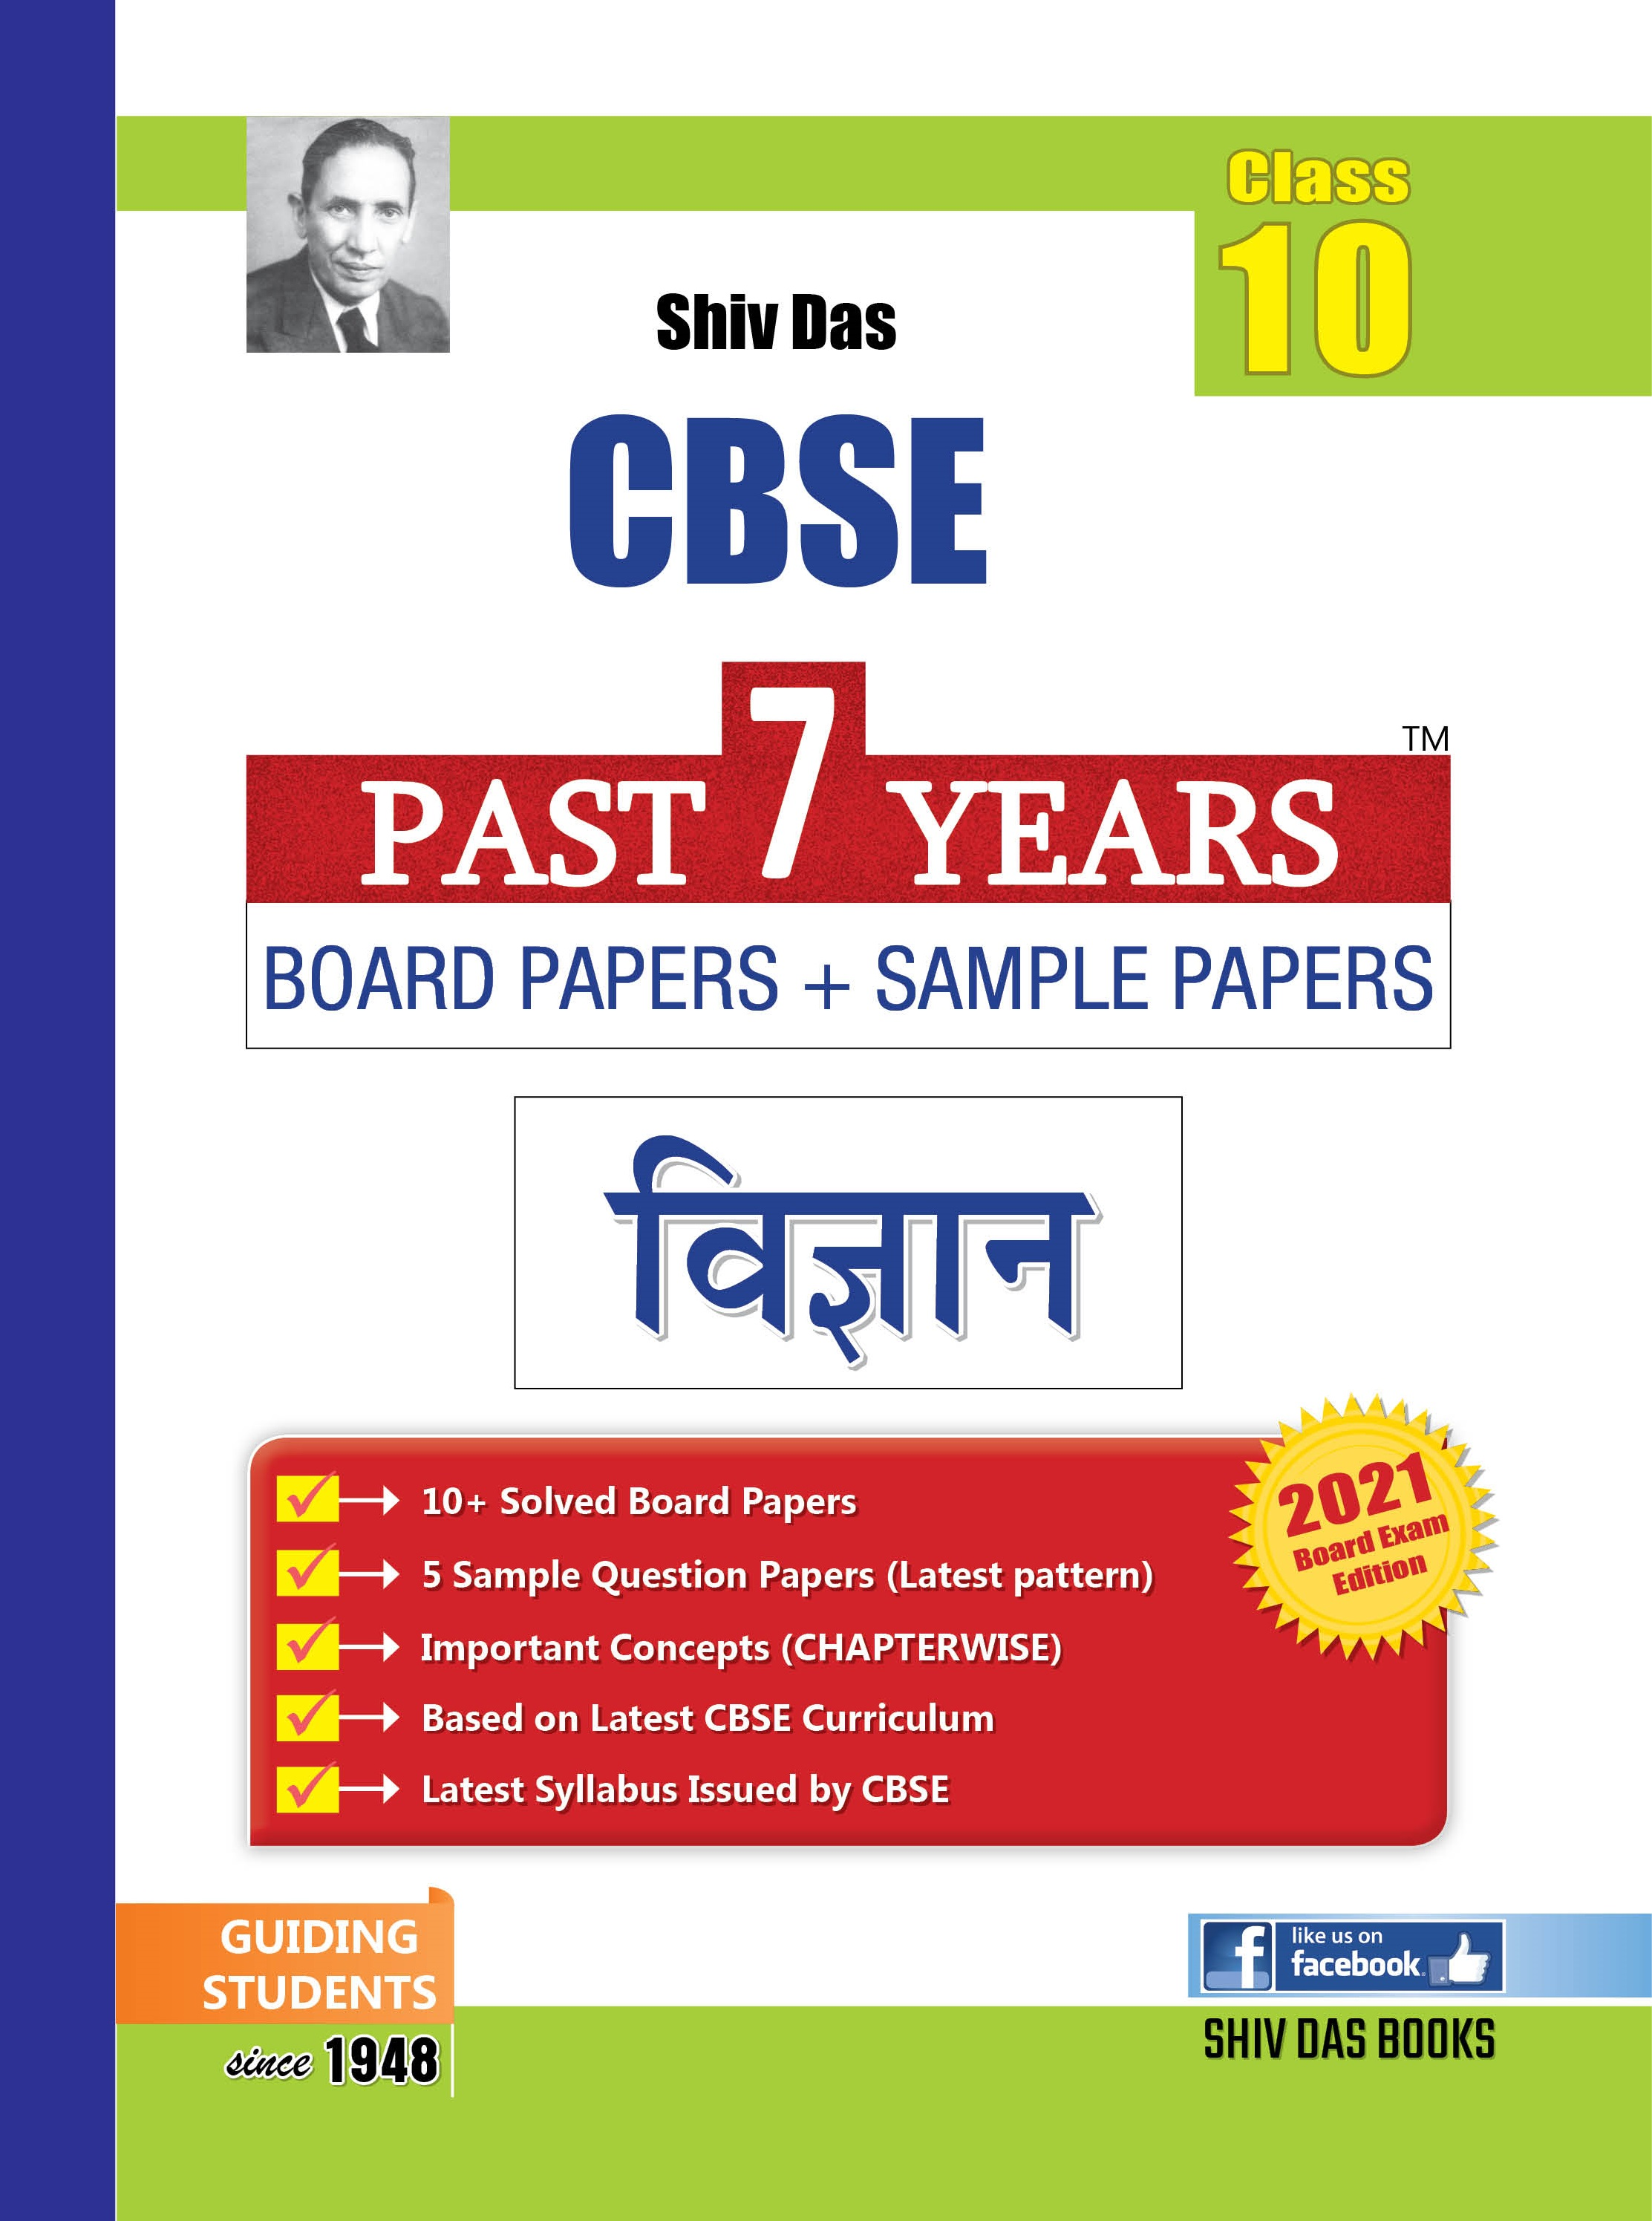 CBSE Past 7 Years Solved Board Papers and Sample Papers for Class 10 Vigyan By SHIVDAS (2021 Board Exam Edition)